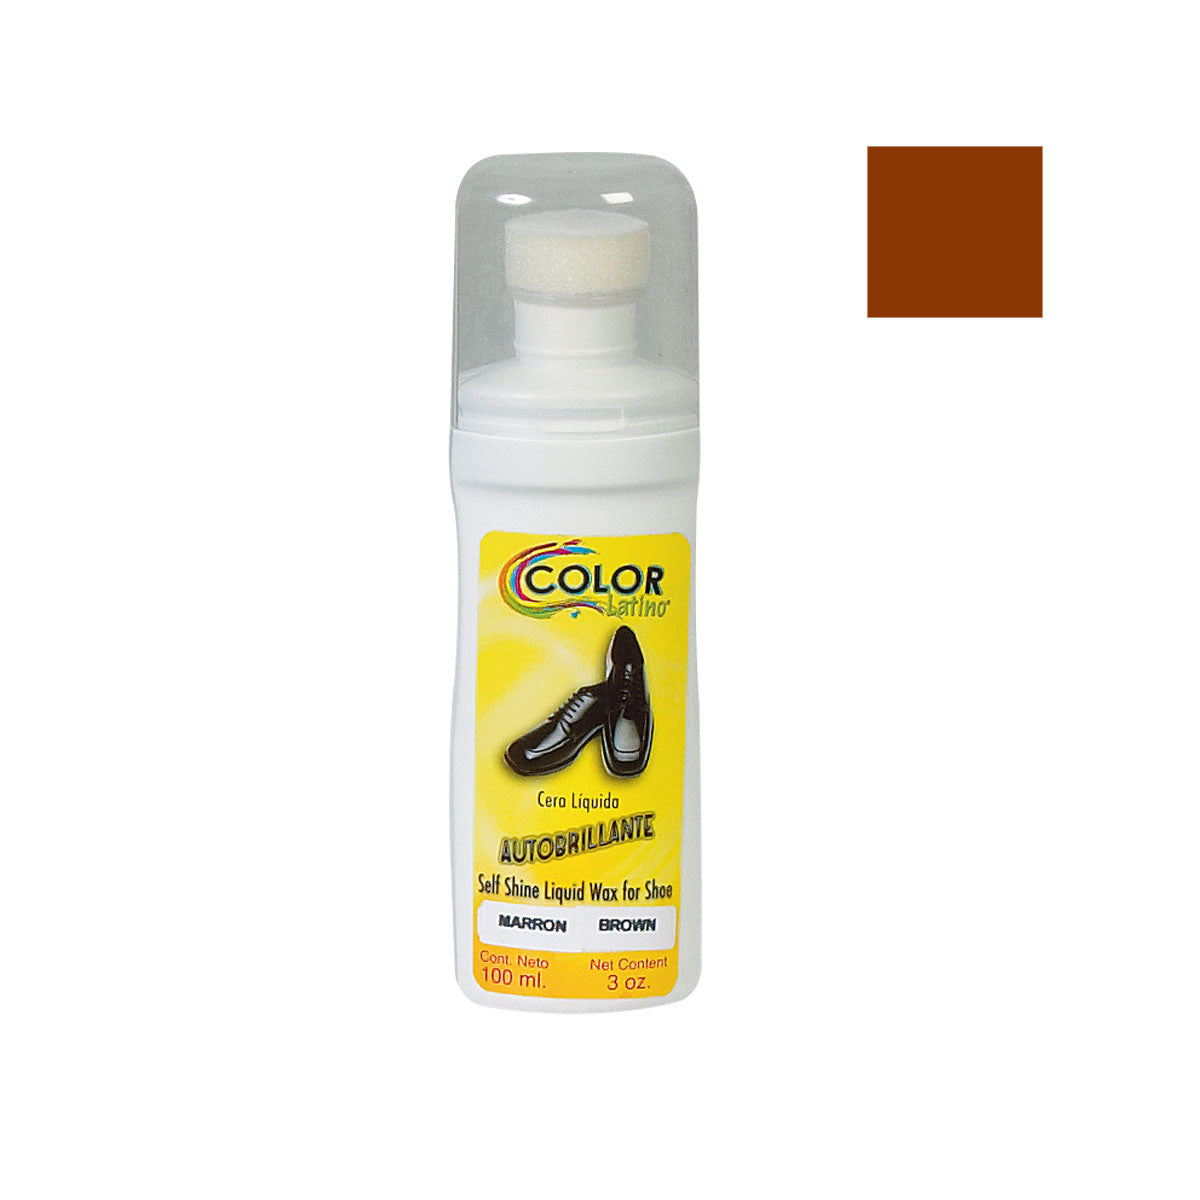 CERA LIQUIDA AUTOBRILLANTE 100 ml COLOR:MARRON/BROWN